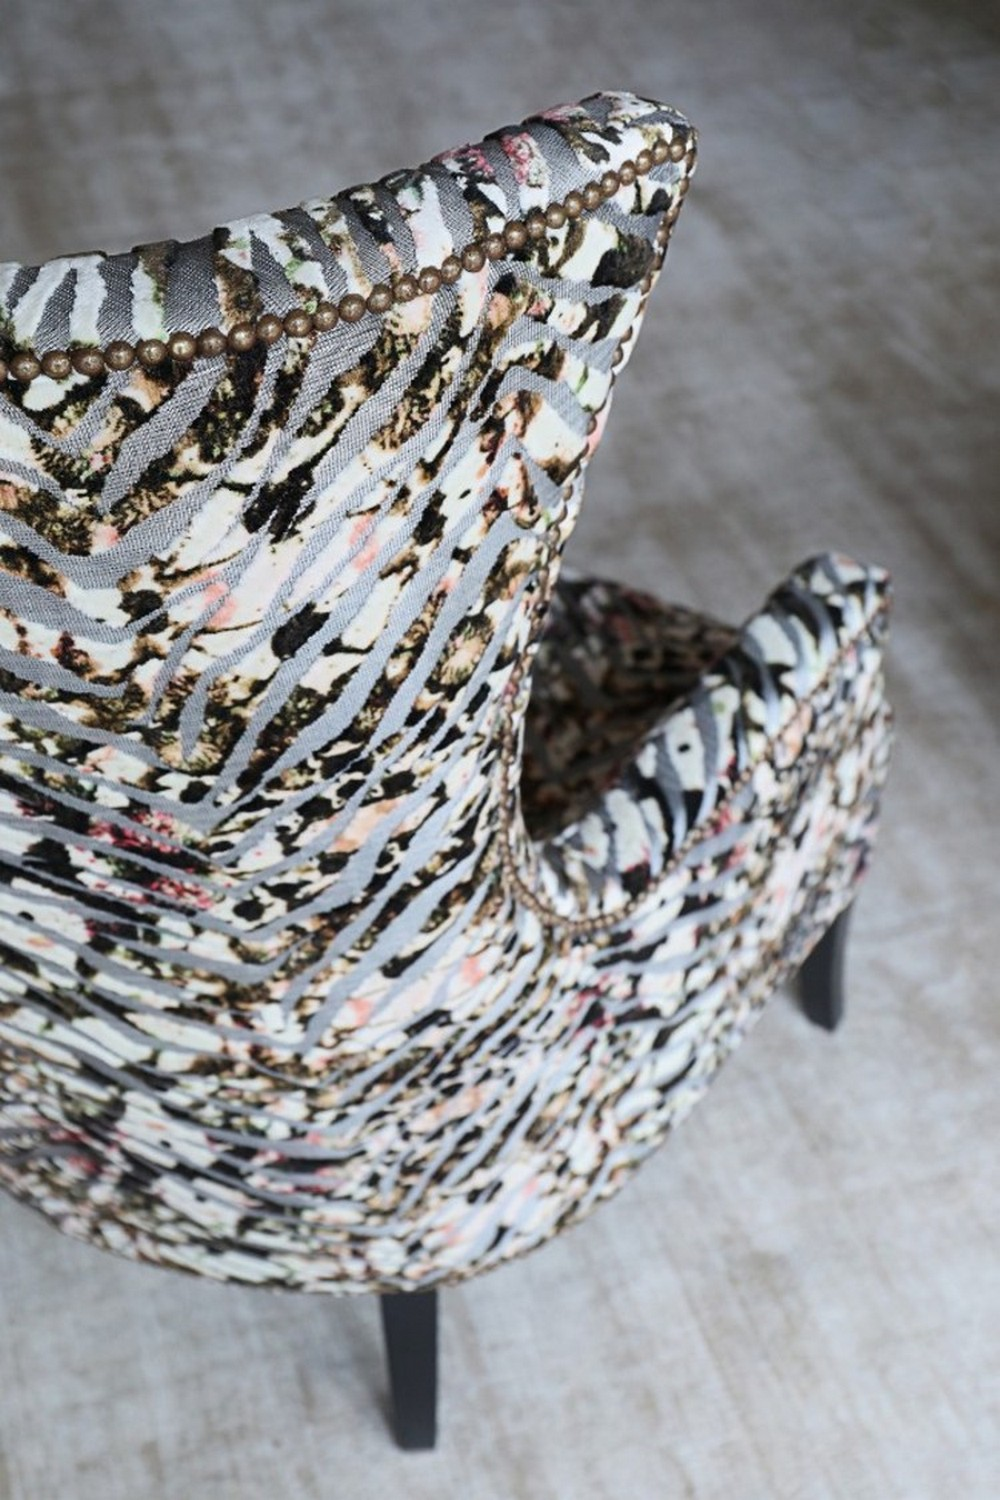 Flora Fabrics: how you can apply this trend to your decor flora fabrics Flora Fabrics: how you can apply this trend to your decor dukono armchair brabbu interior design trends 2019 fauna patterns